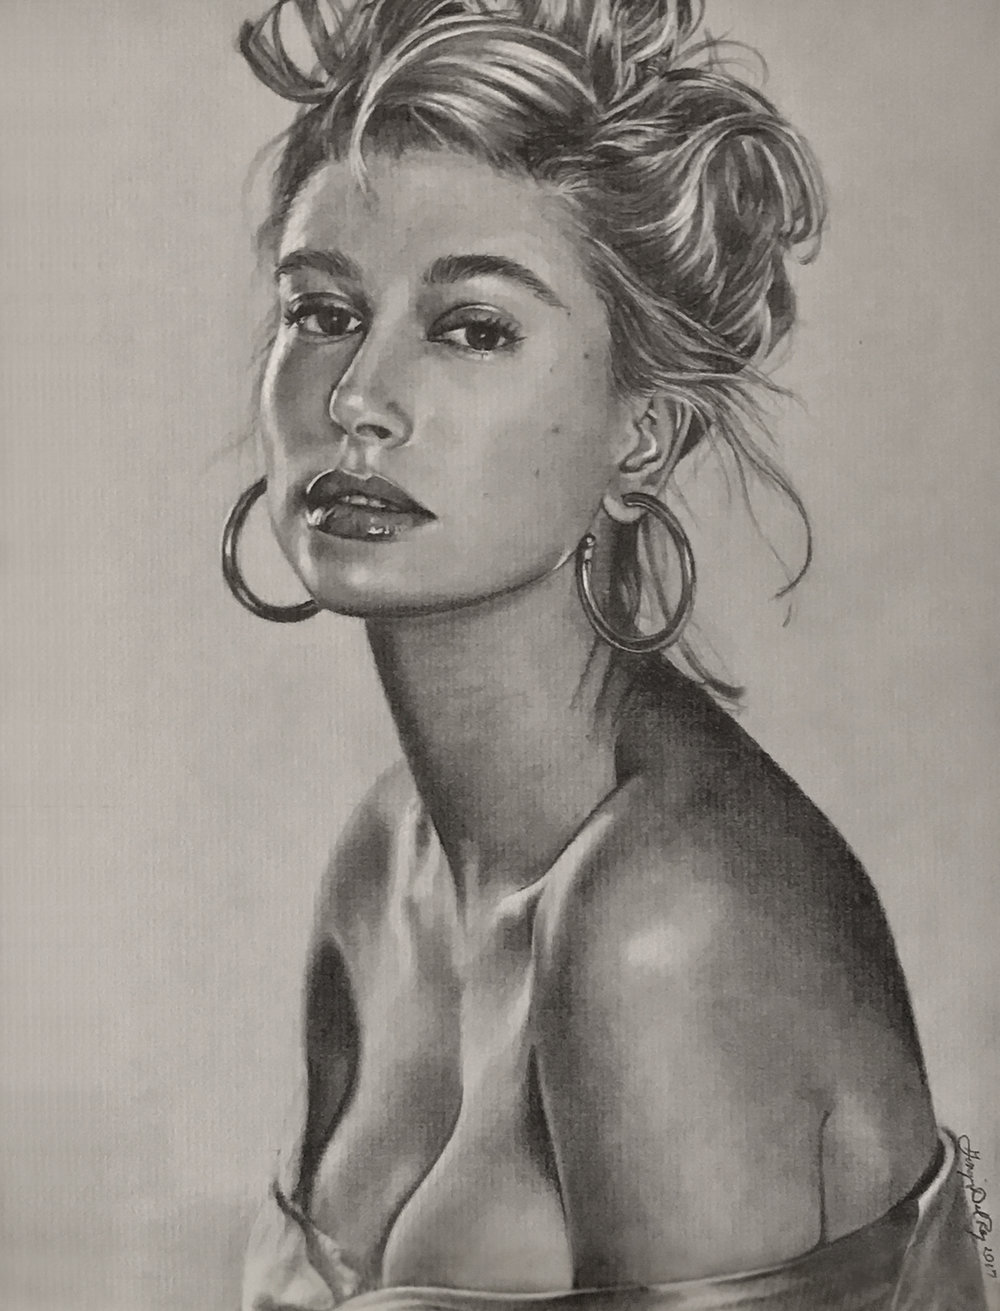 """Can You See Me"", 2017, pencil on paper  Ginger Del Rey  portrait of Hailey Baldwin"